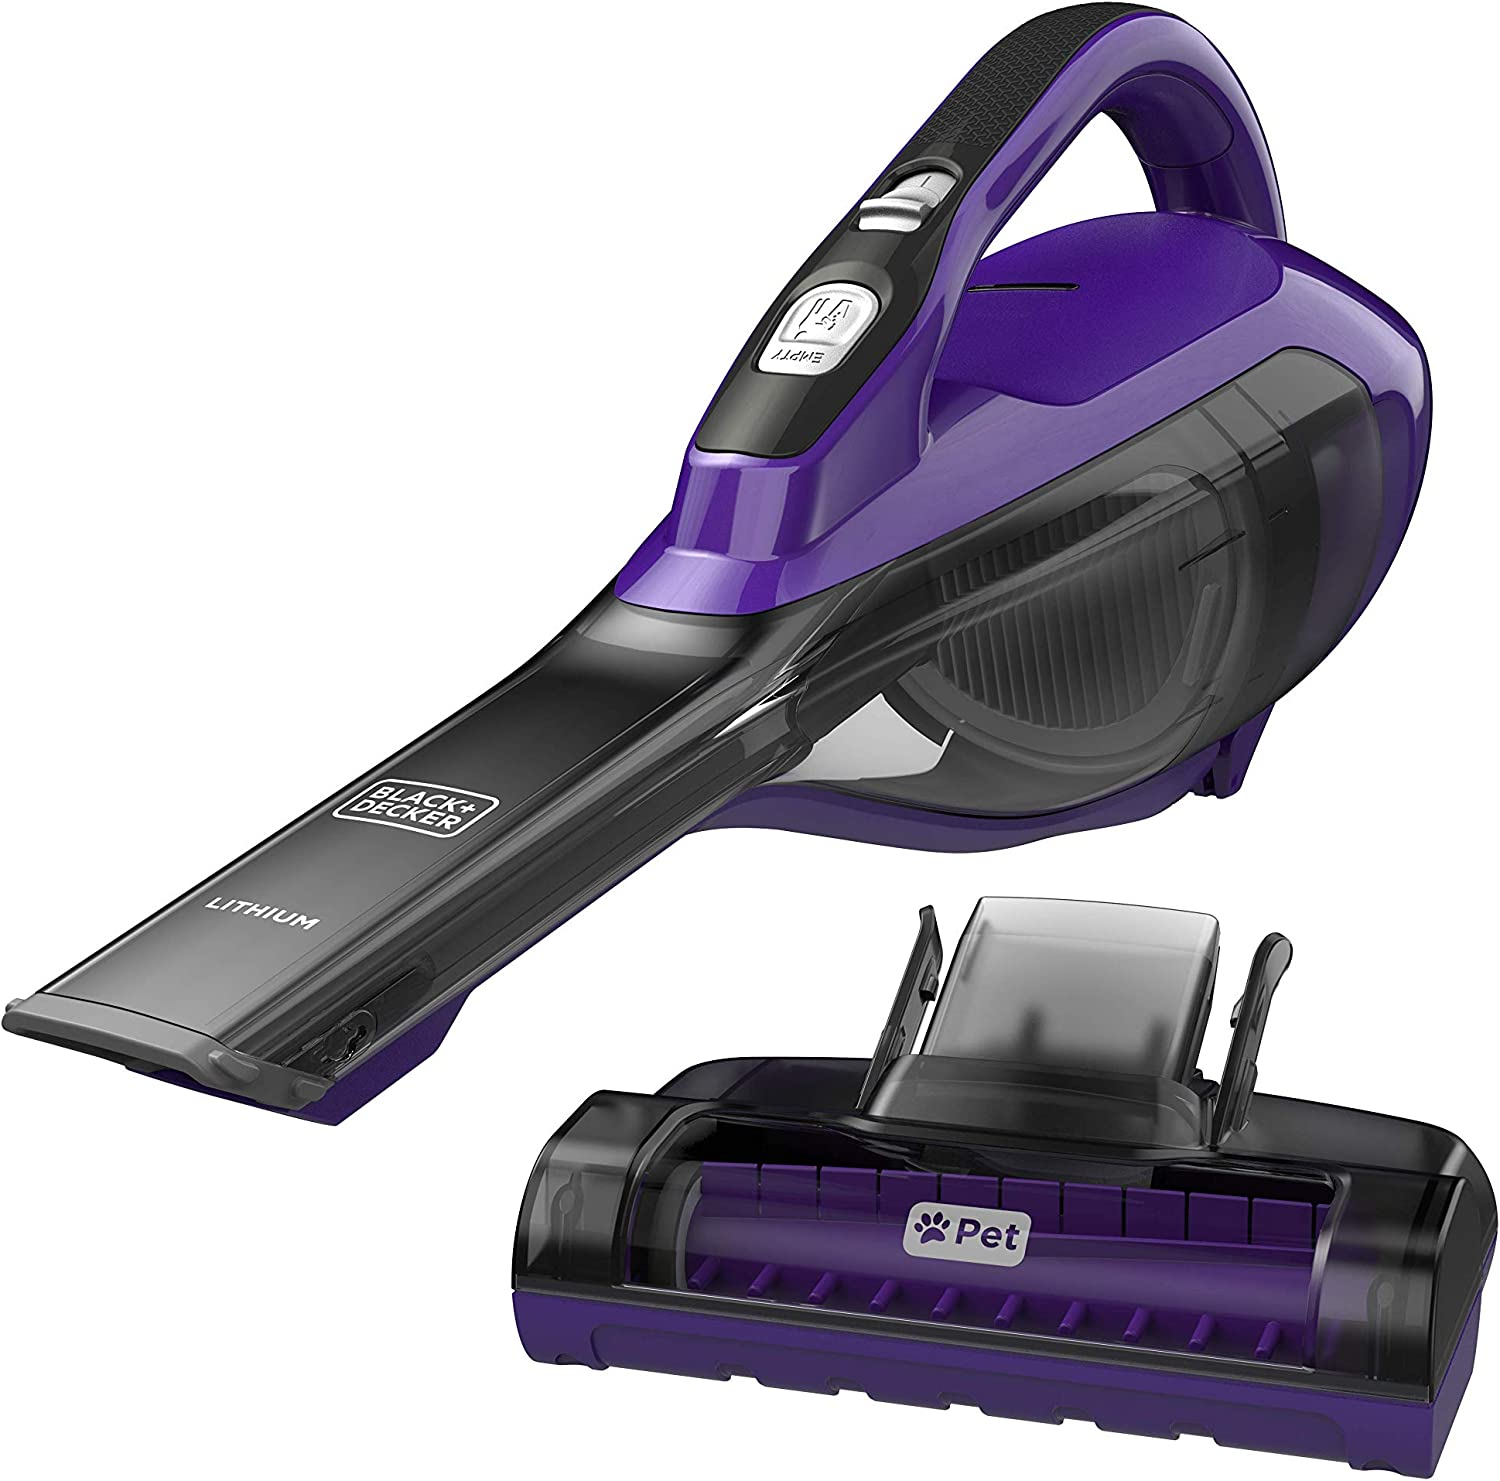 Best vacuum for pet hair and stairs